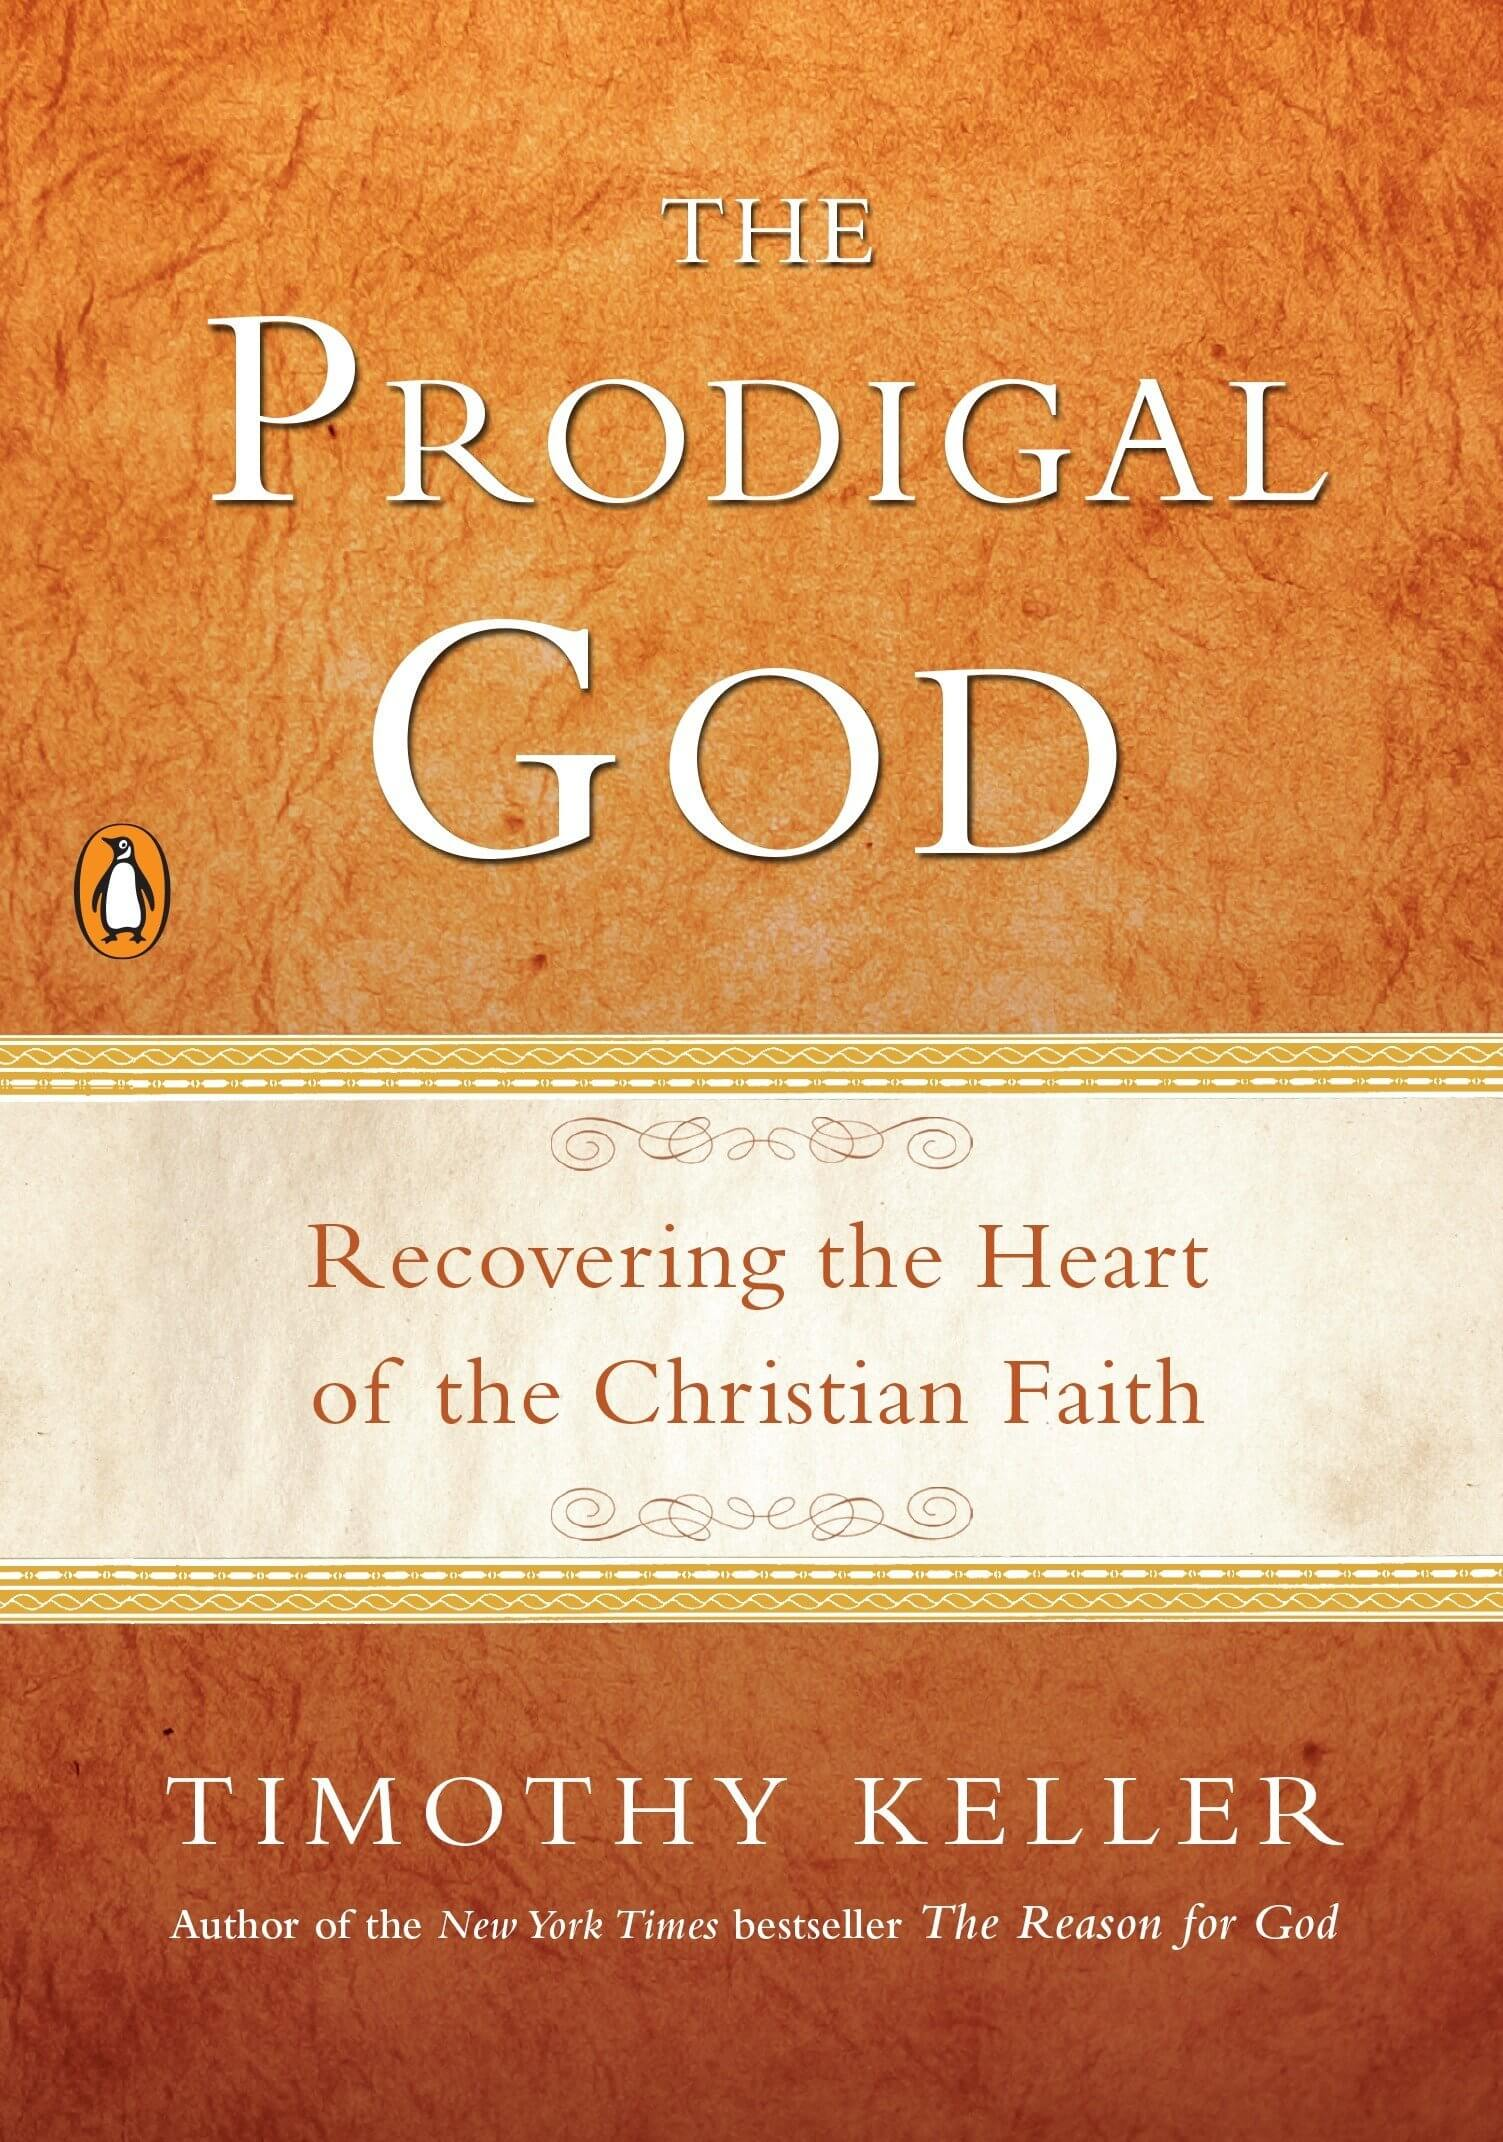 THE-PRODIGAL-GOD-RECOVERING-THE-HEART-OF-THE-CHRISTIAN-FAITH-TIMOTHY-KELLER